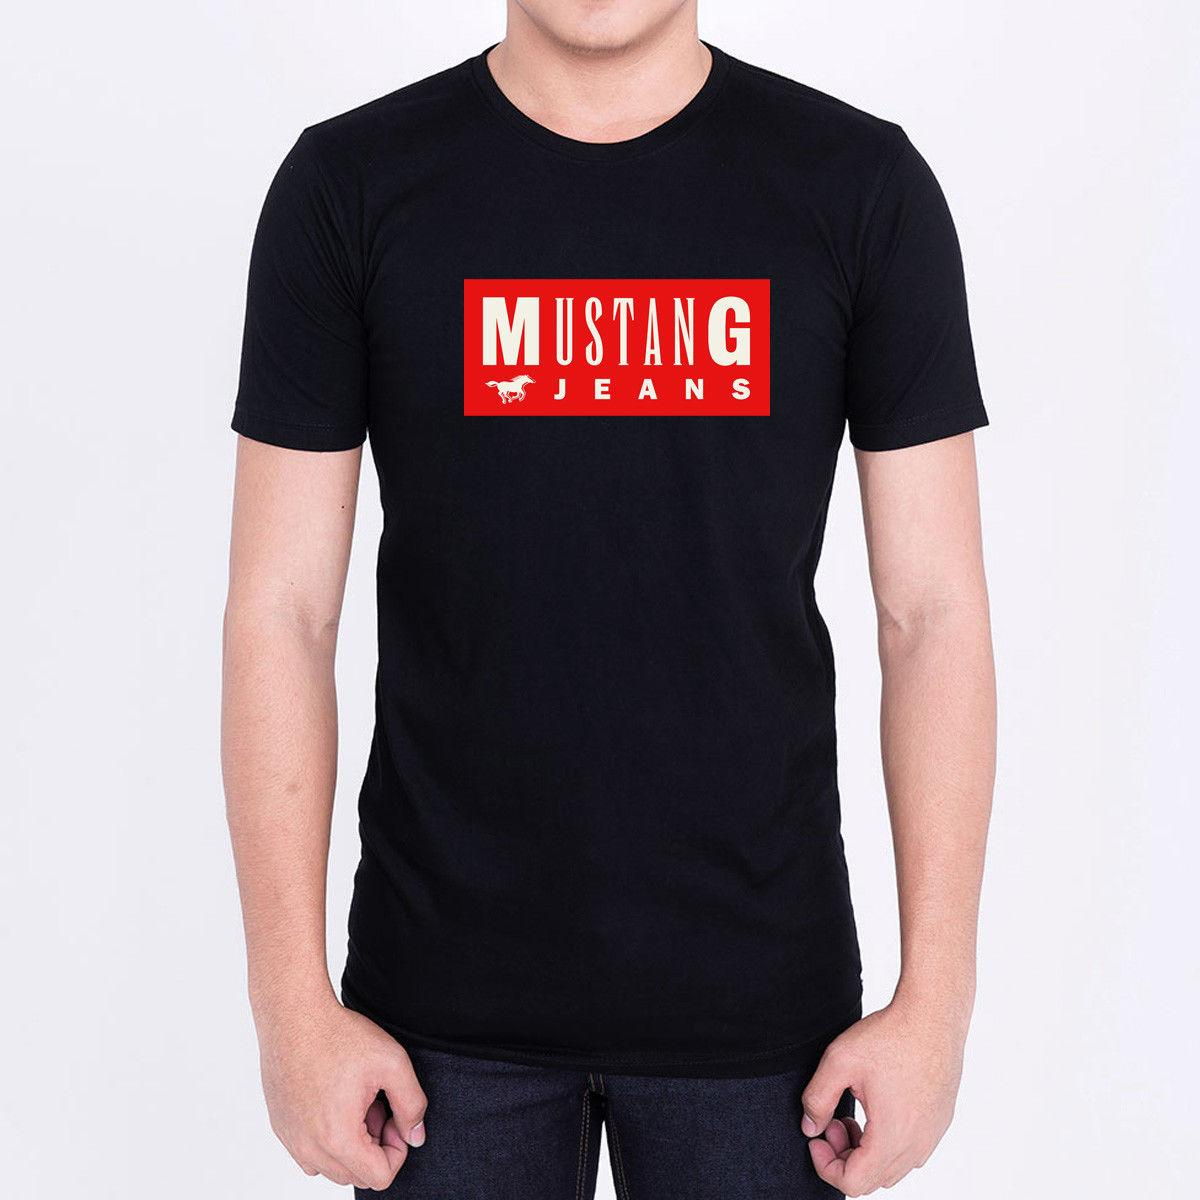 MUSTANG JEANS LOGO FAMOUS BRAND FASHION Men Black T Shirt 100% Cotton  Graphic Online Funky T Shirts Buy T Shirt Design From Boystshirts55 1b71d3ef01